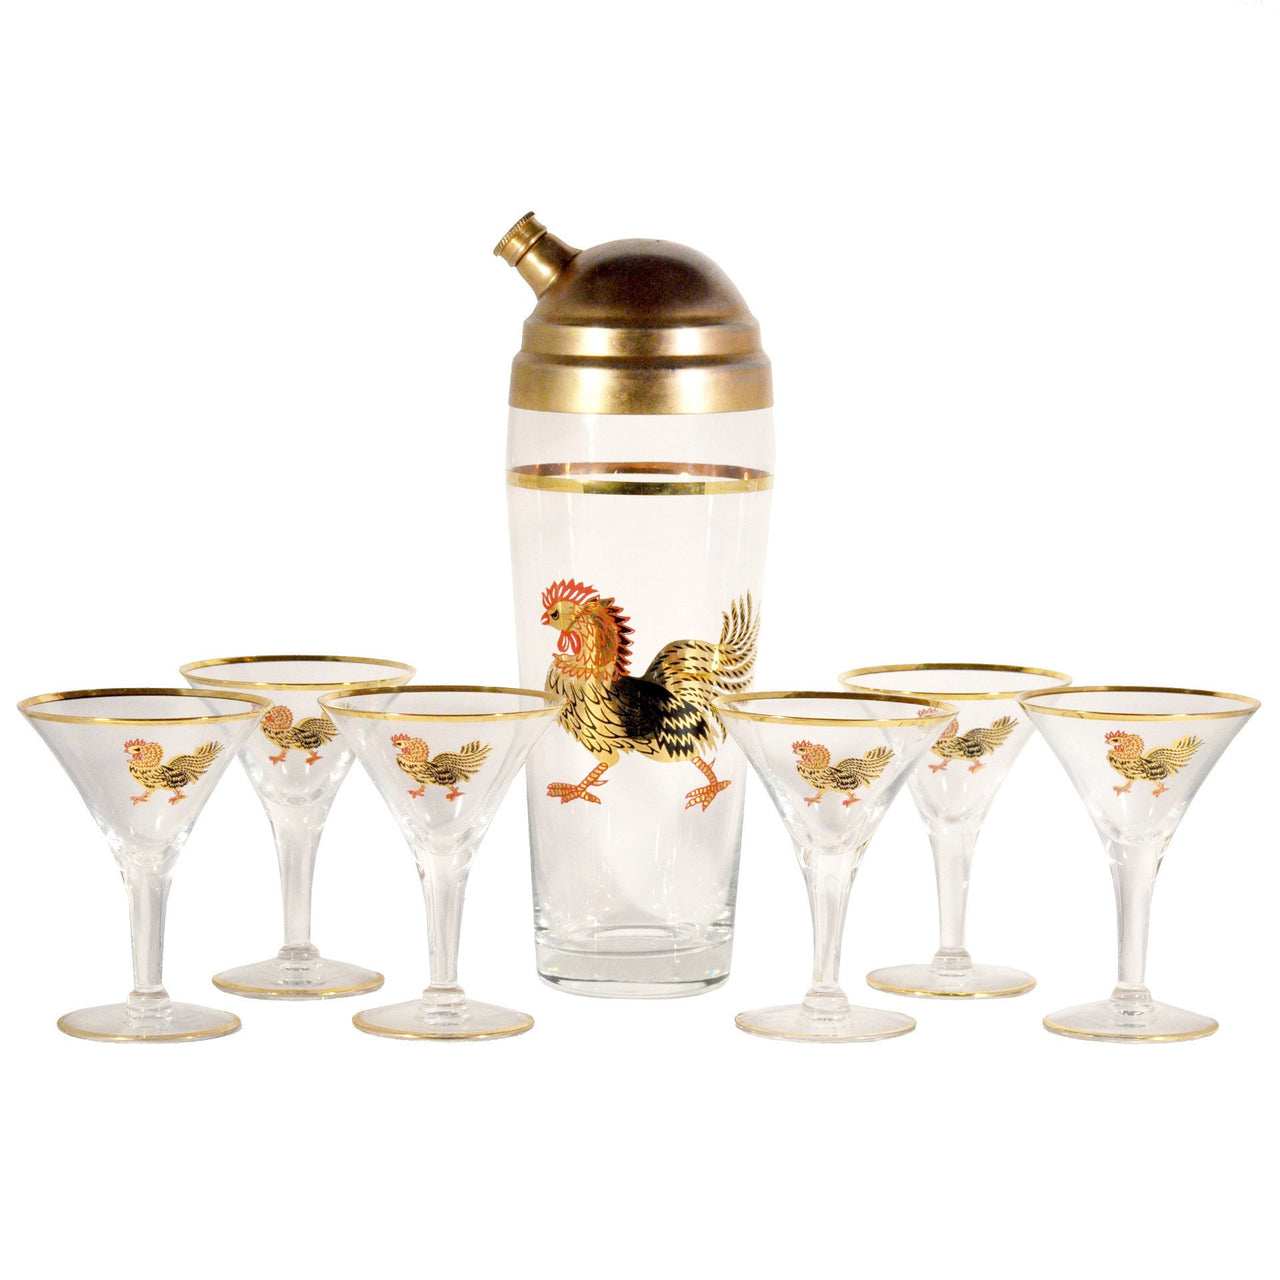 Vintage Gold, Red Rooster Cocktail Shaker Set, The Hour